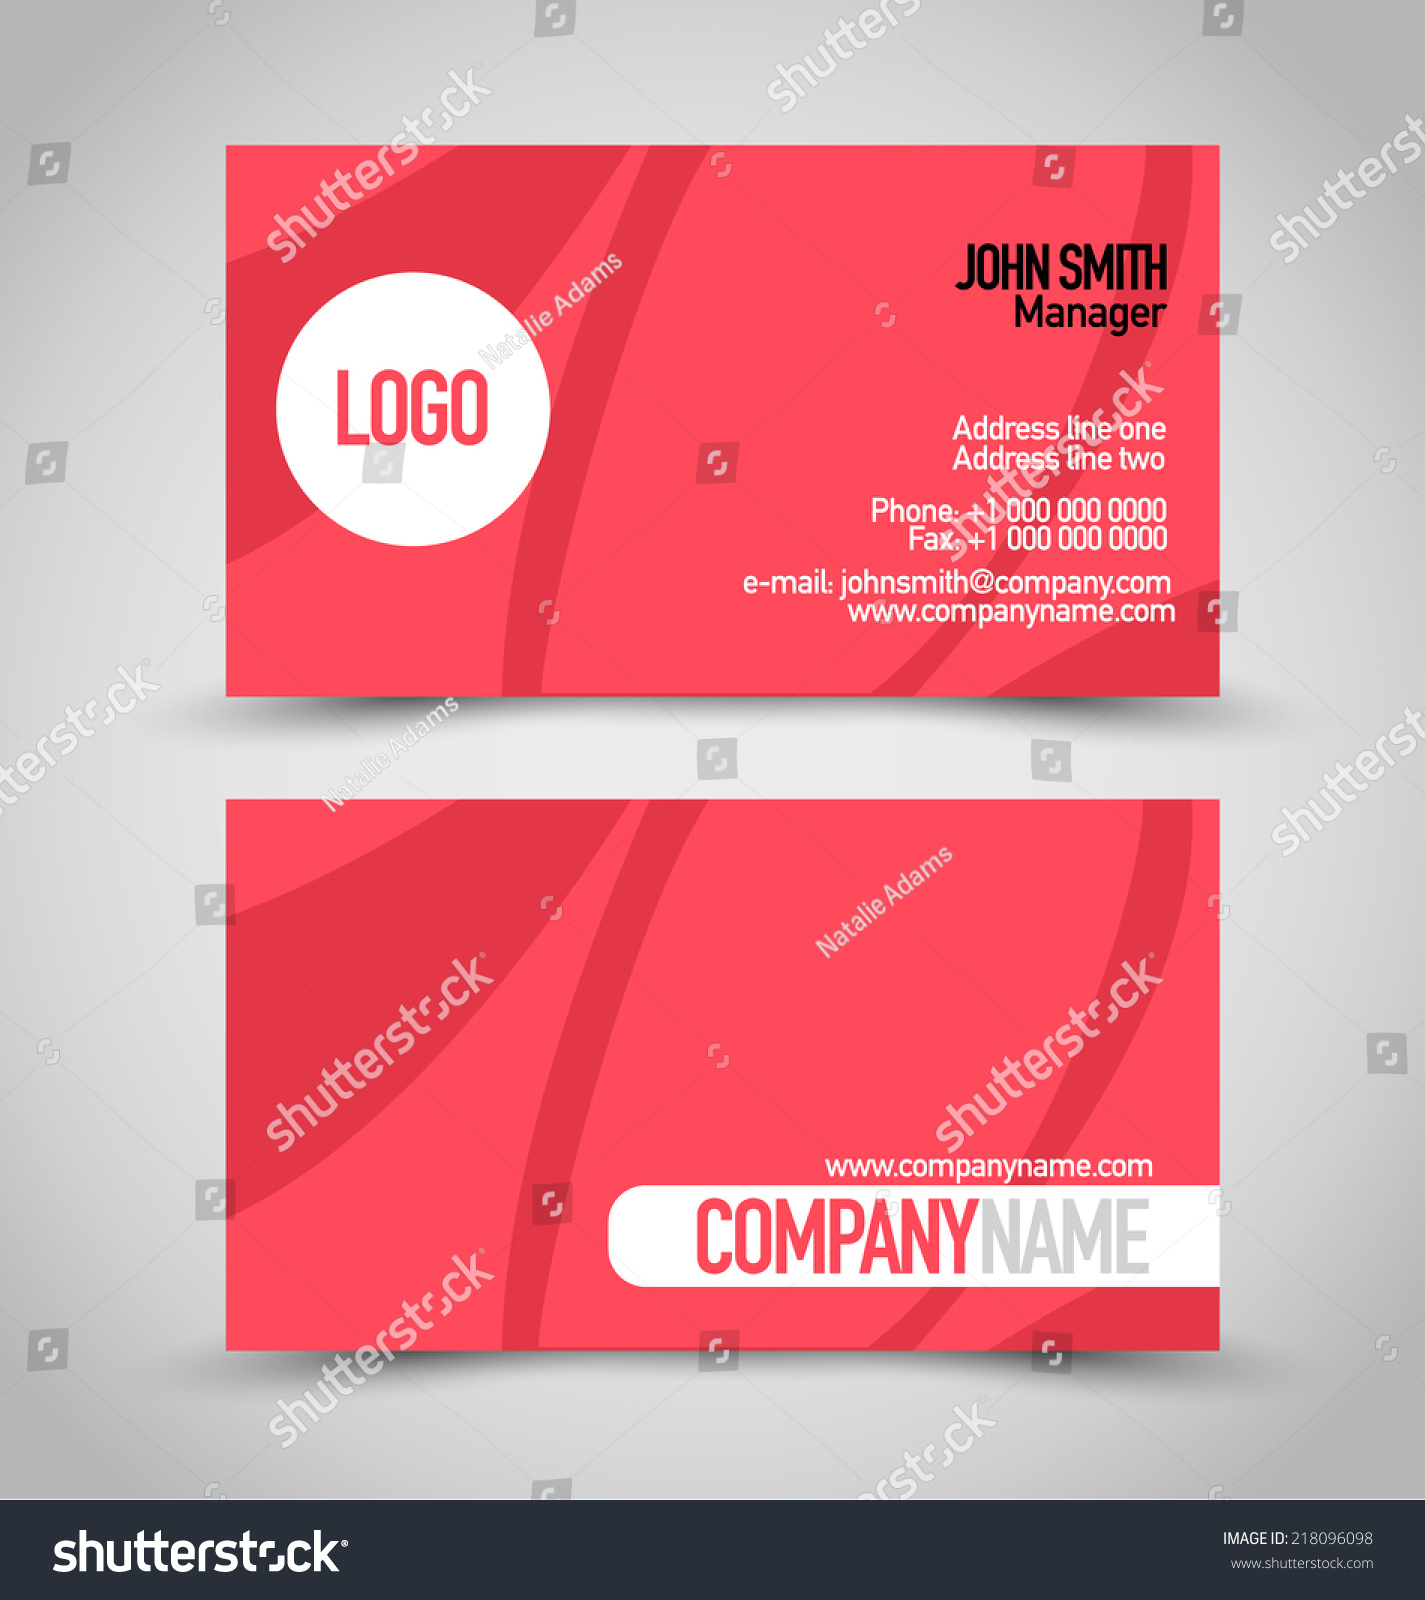 Beautiful image of two color business cards business cards and business card set template red white stock vector magicingreecefo Image collections